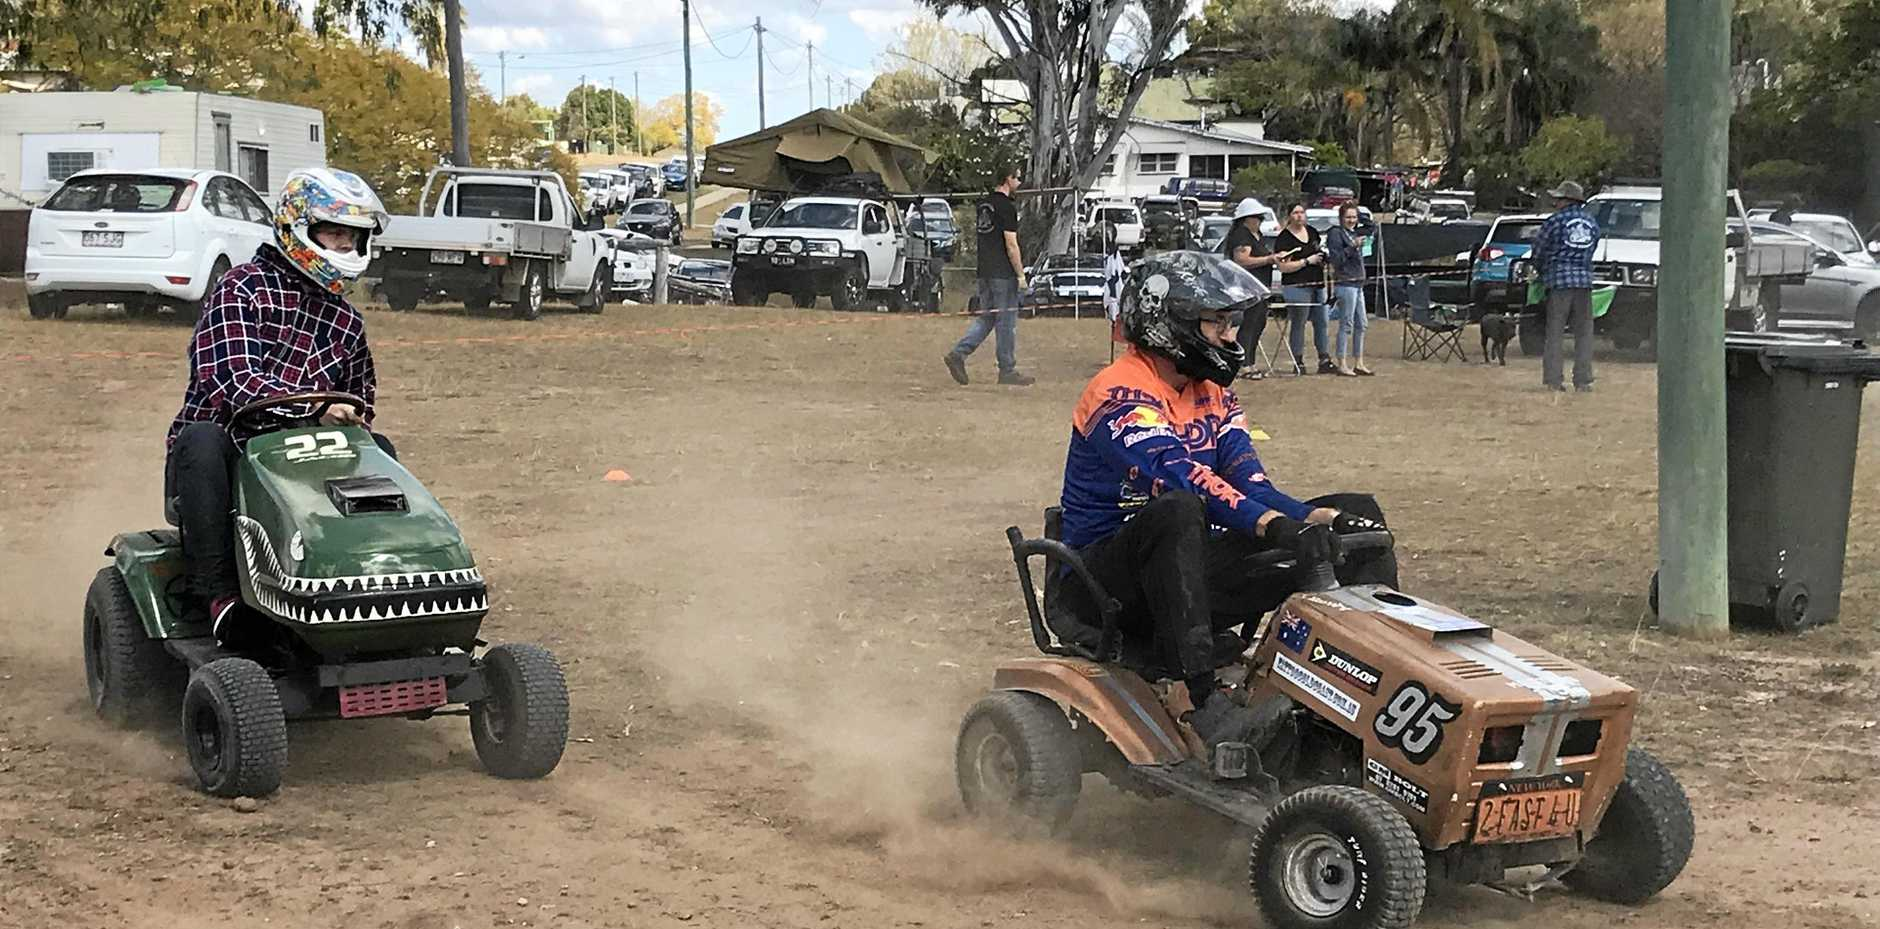 YOU MISSED A BIT: Lawn mower racing was a popular event at Wondai Show.